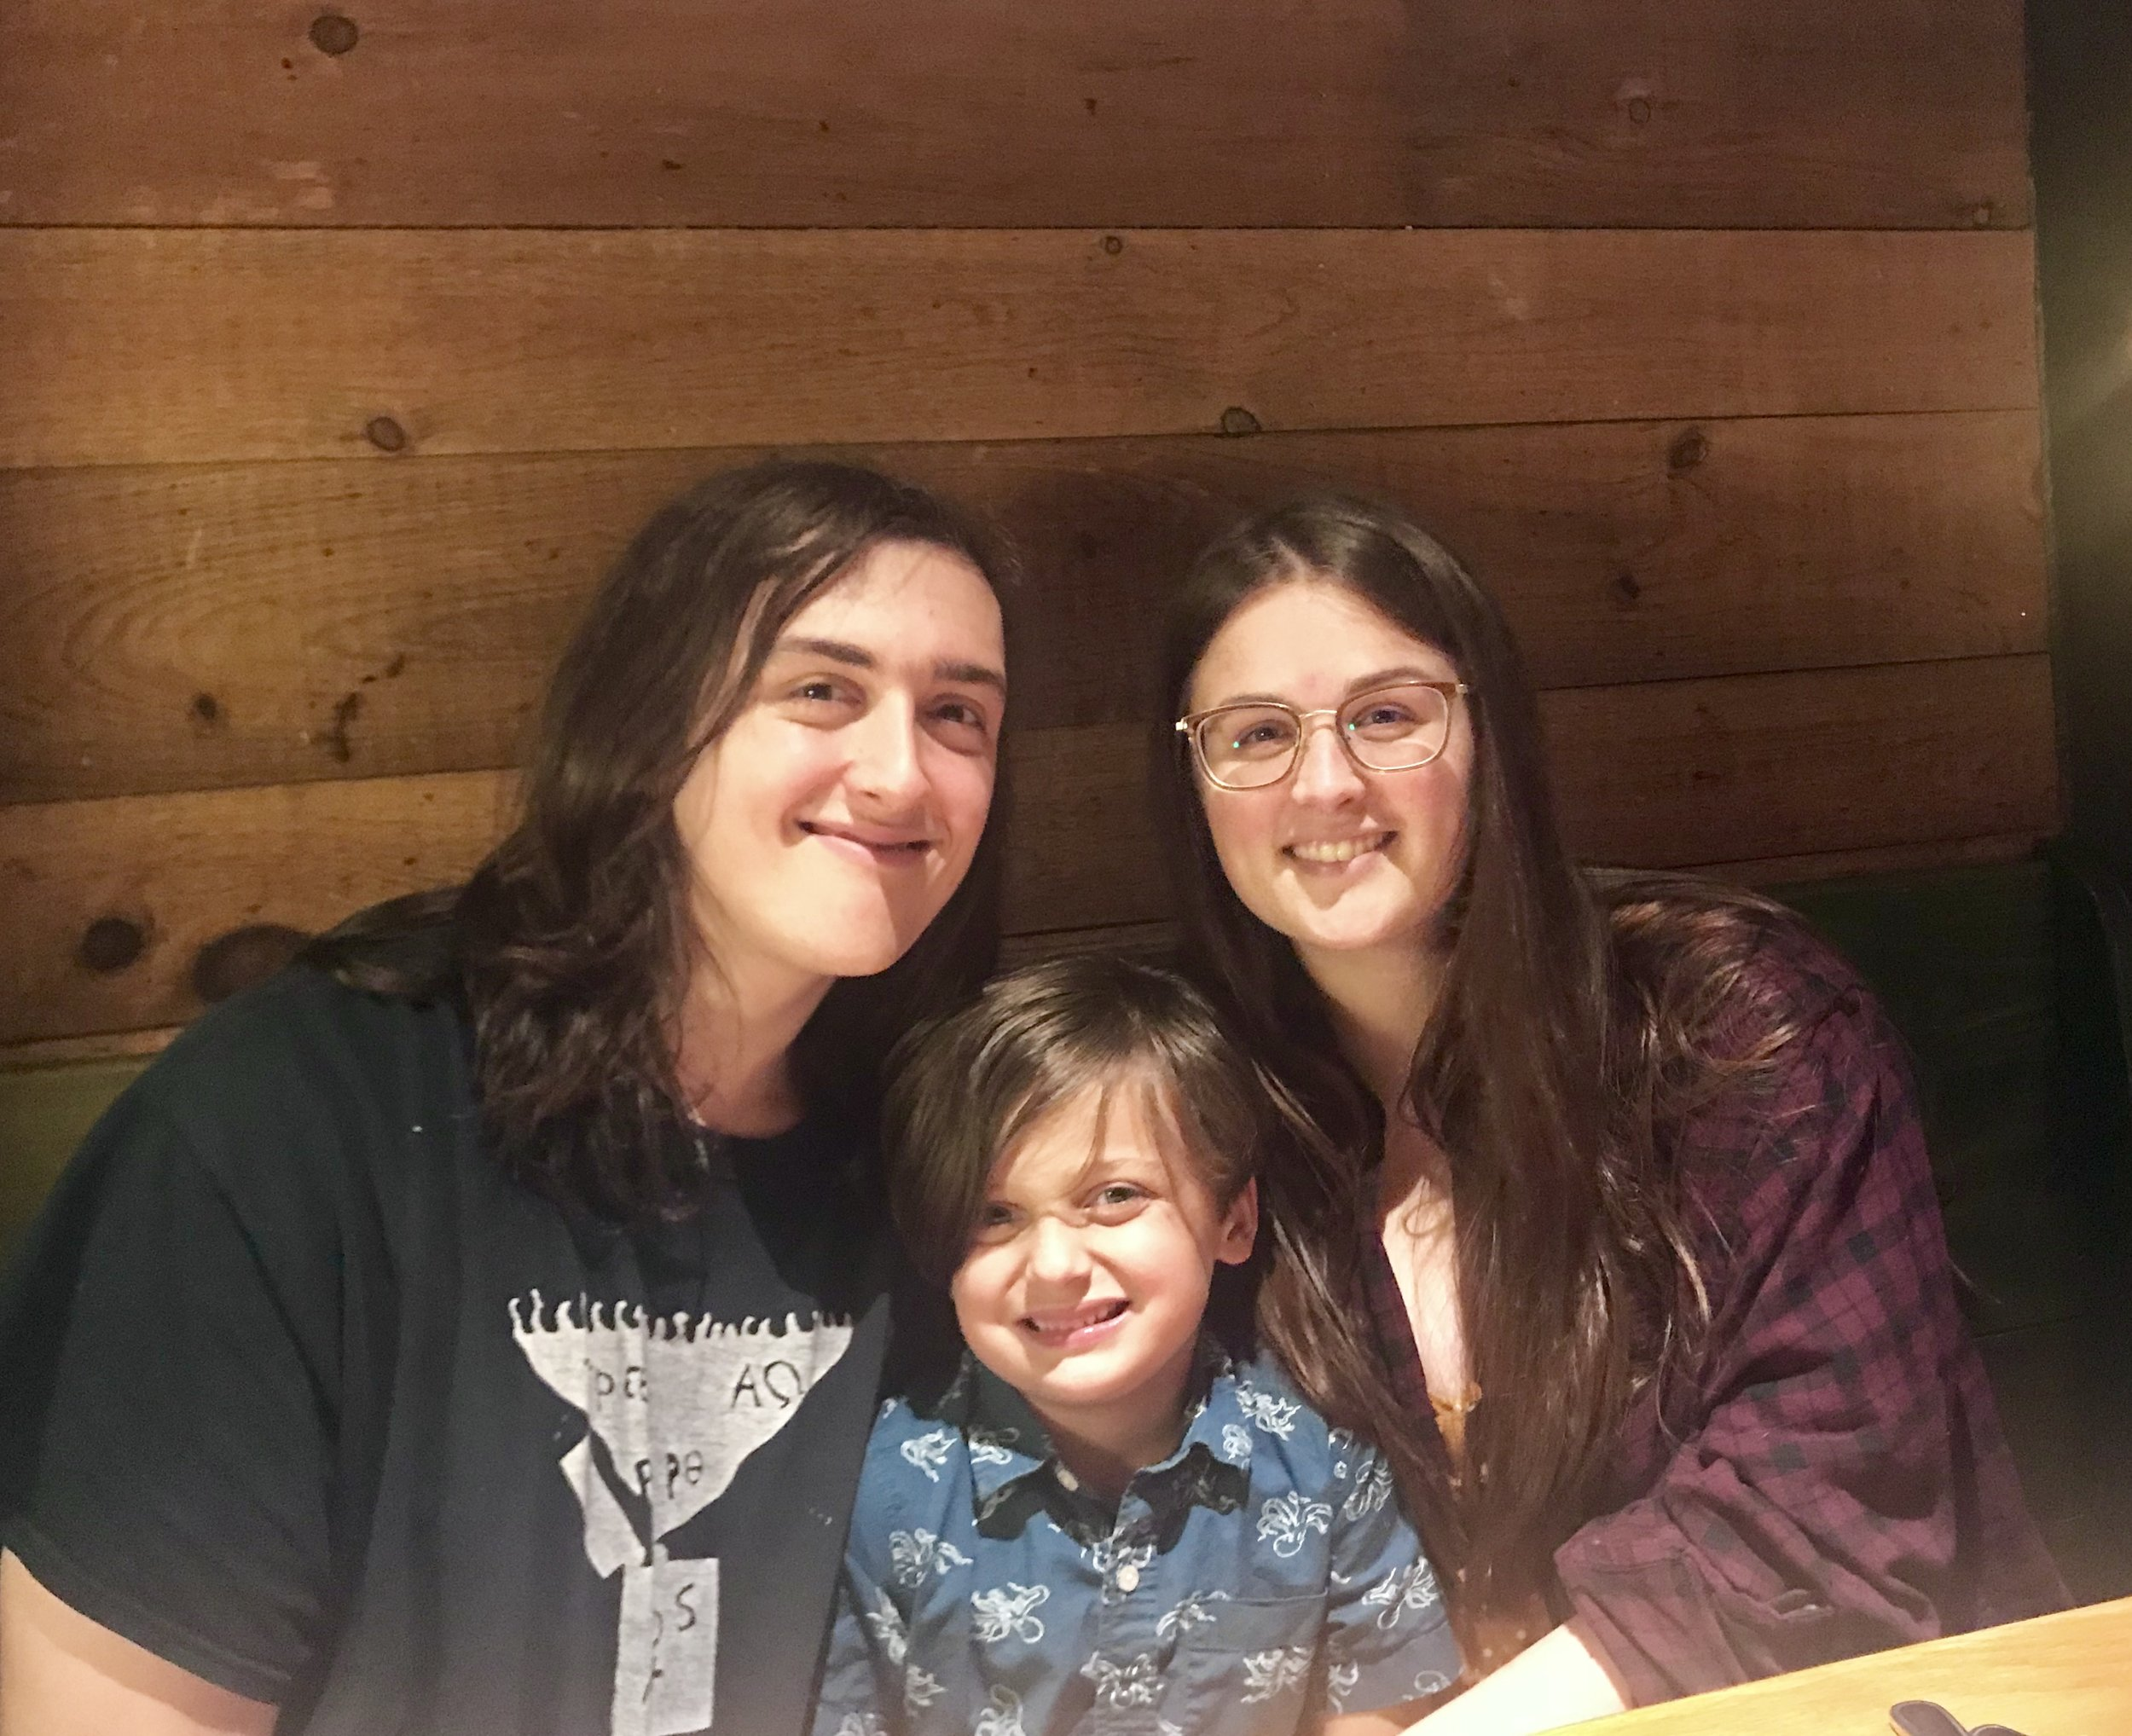 Remy with 2 of his older siblings, William and Samantha